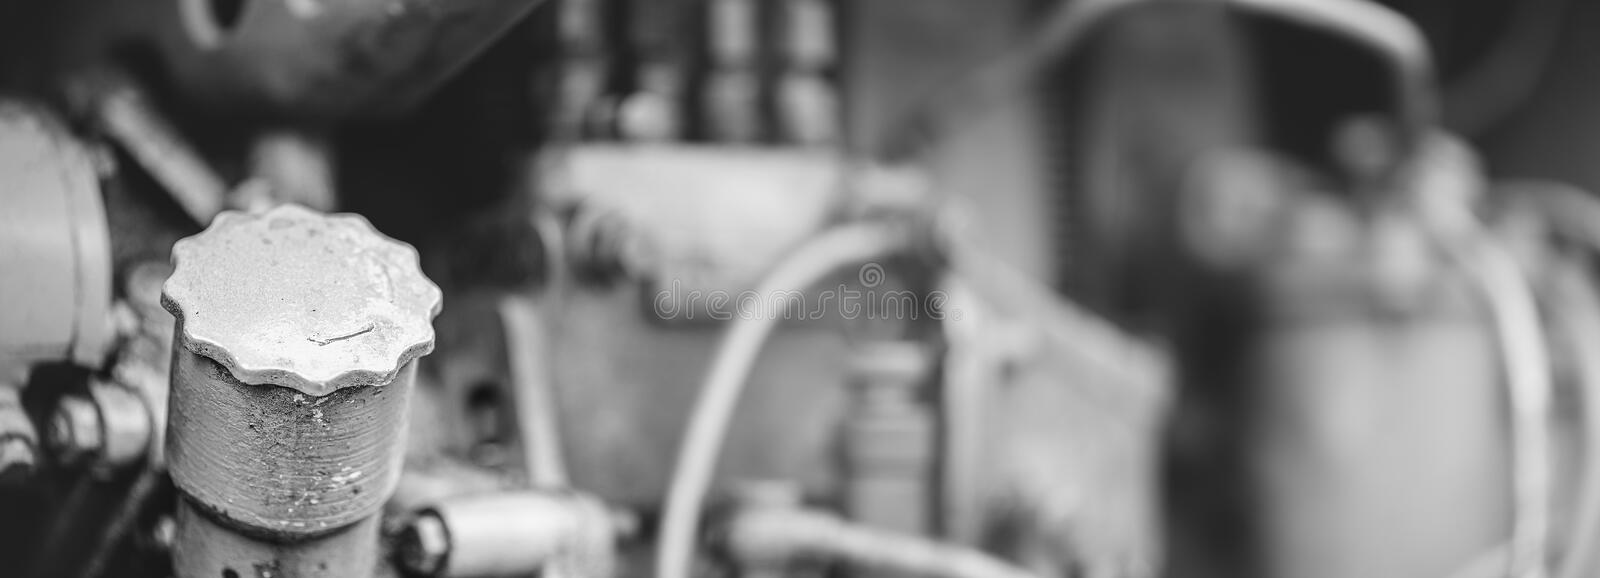 Under the hood of old tractor, retro engine close up. Wide angle retro background on heavy industry theme with space for text. stock photos